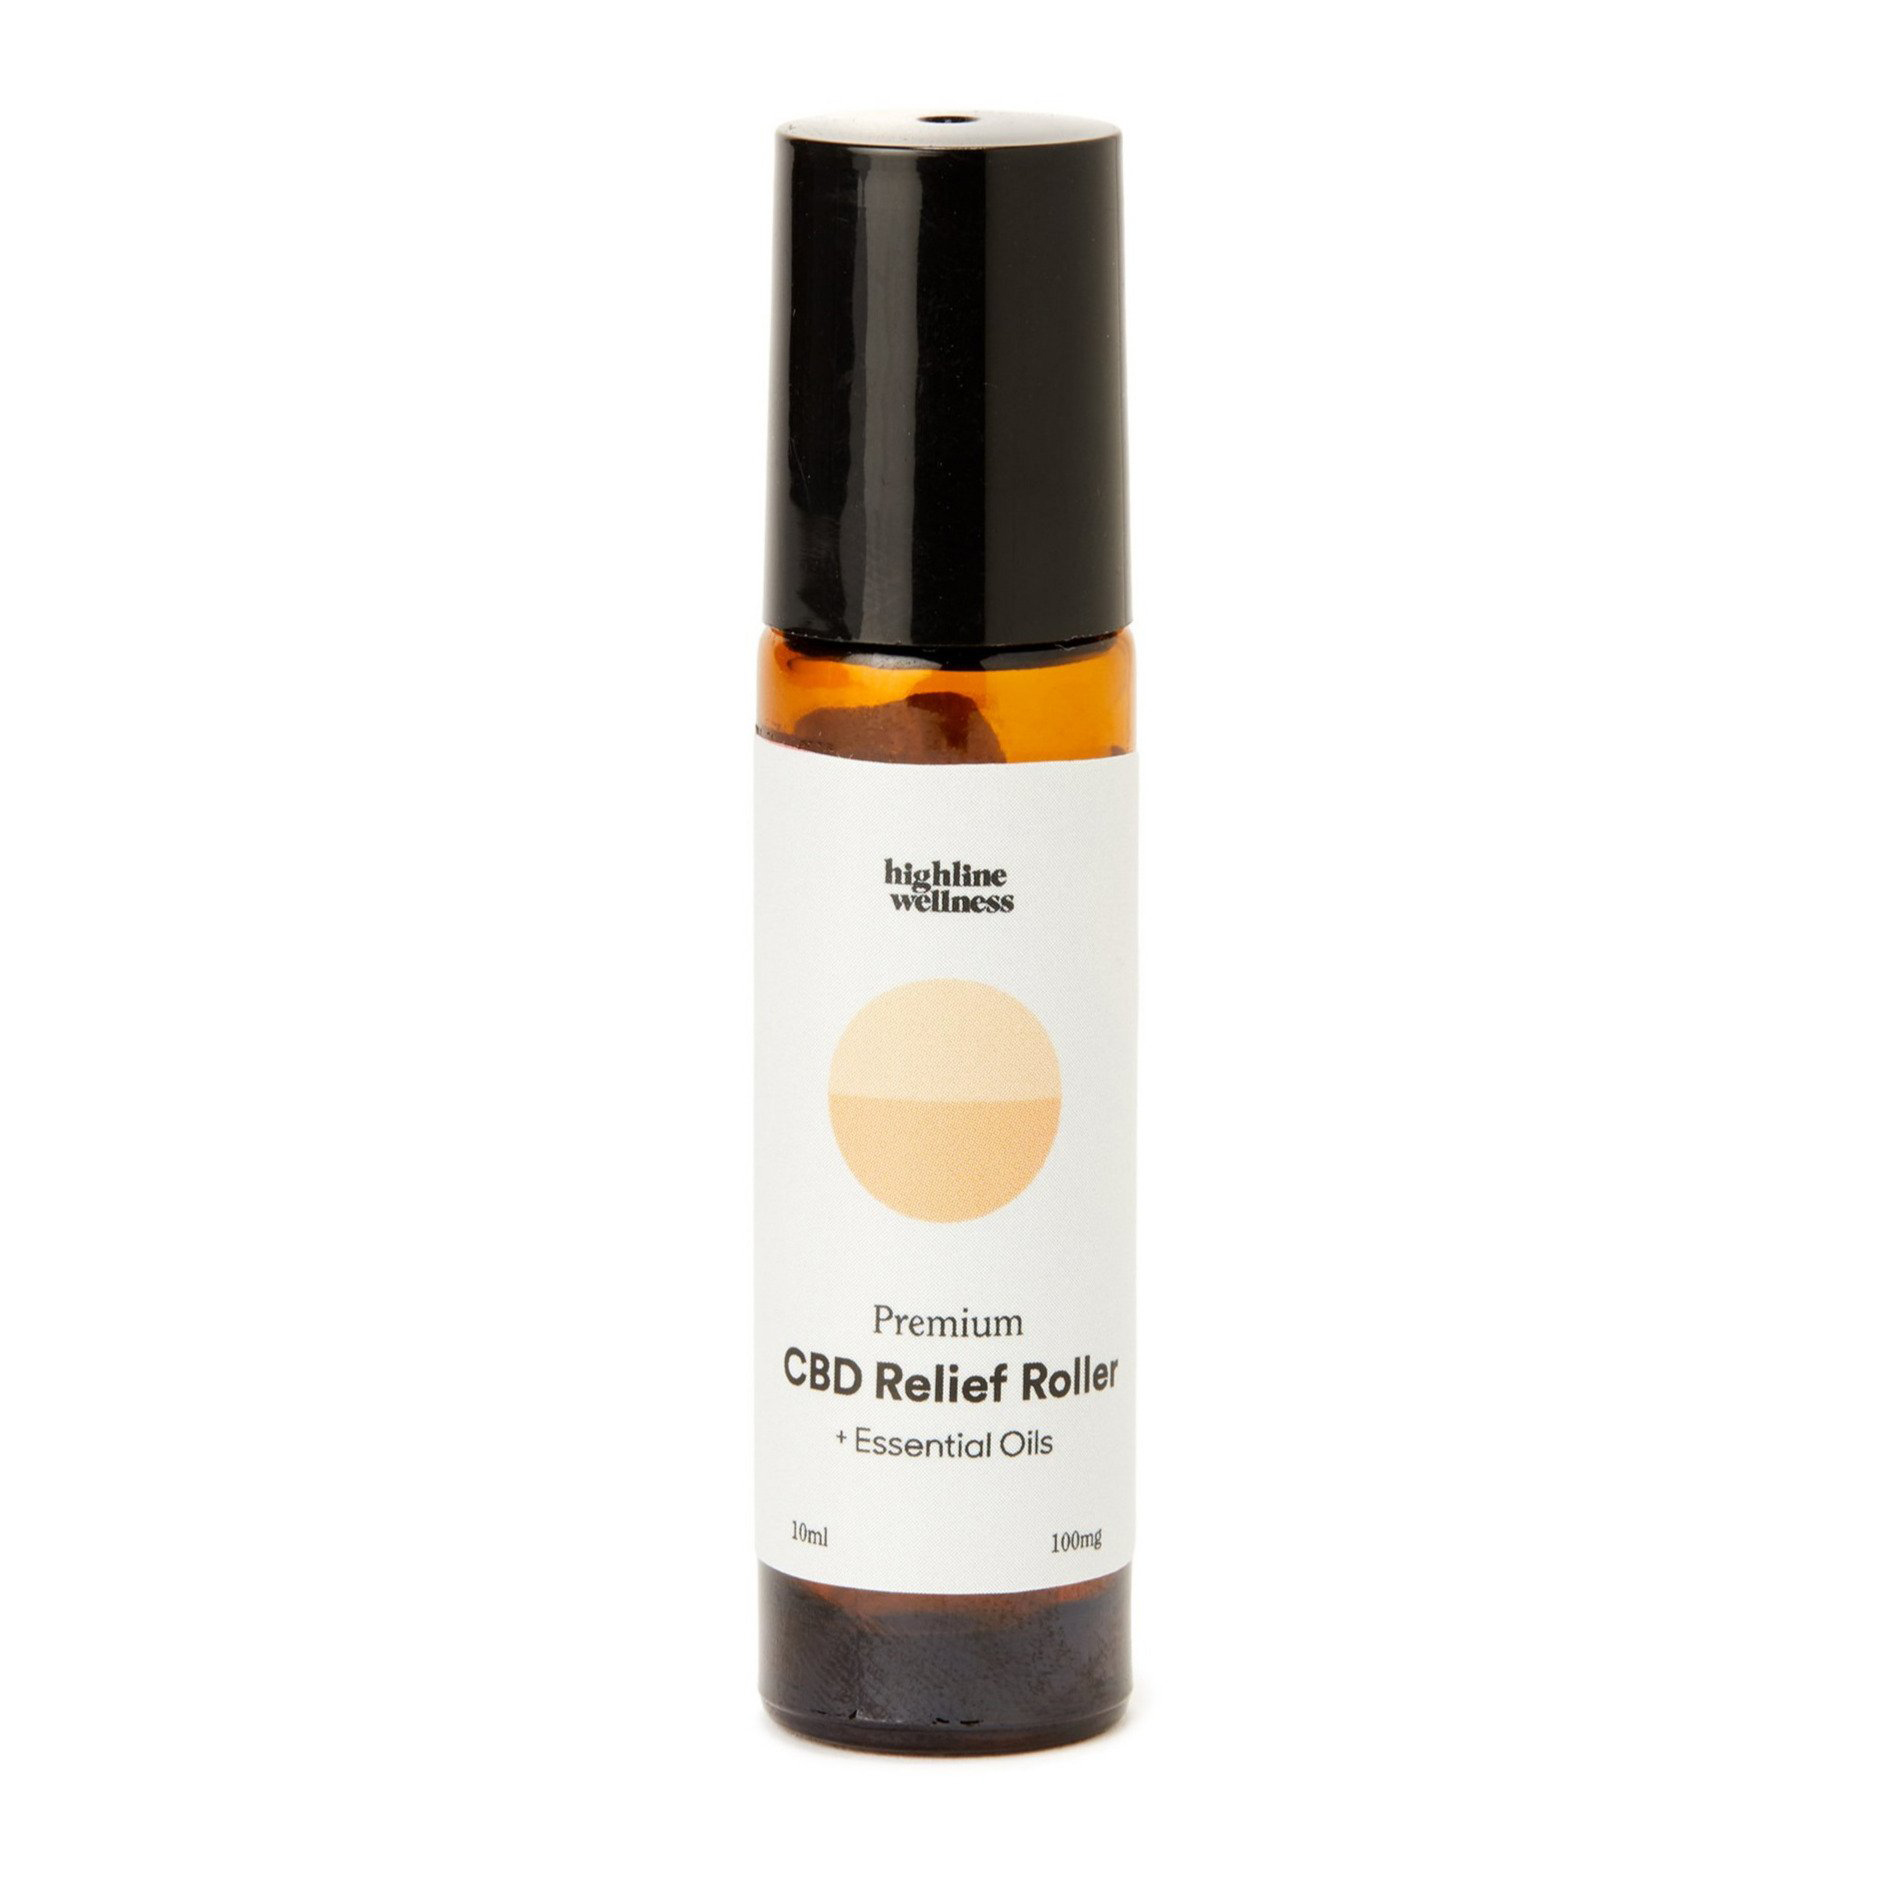 highline wellness cbd relief roller with essential oils